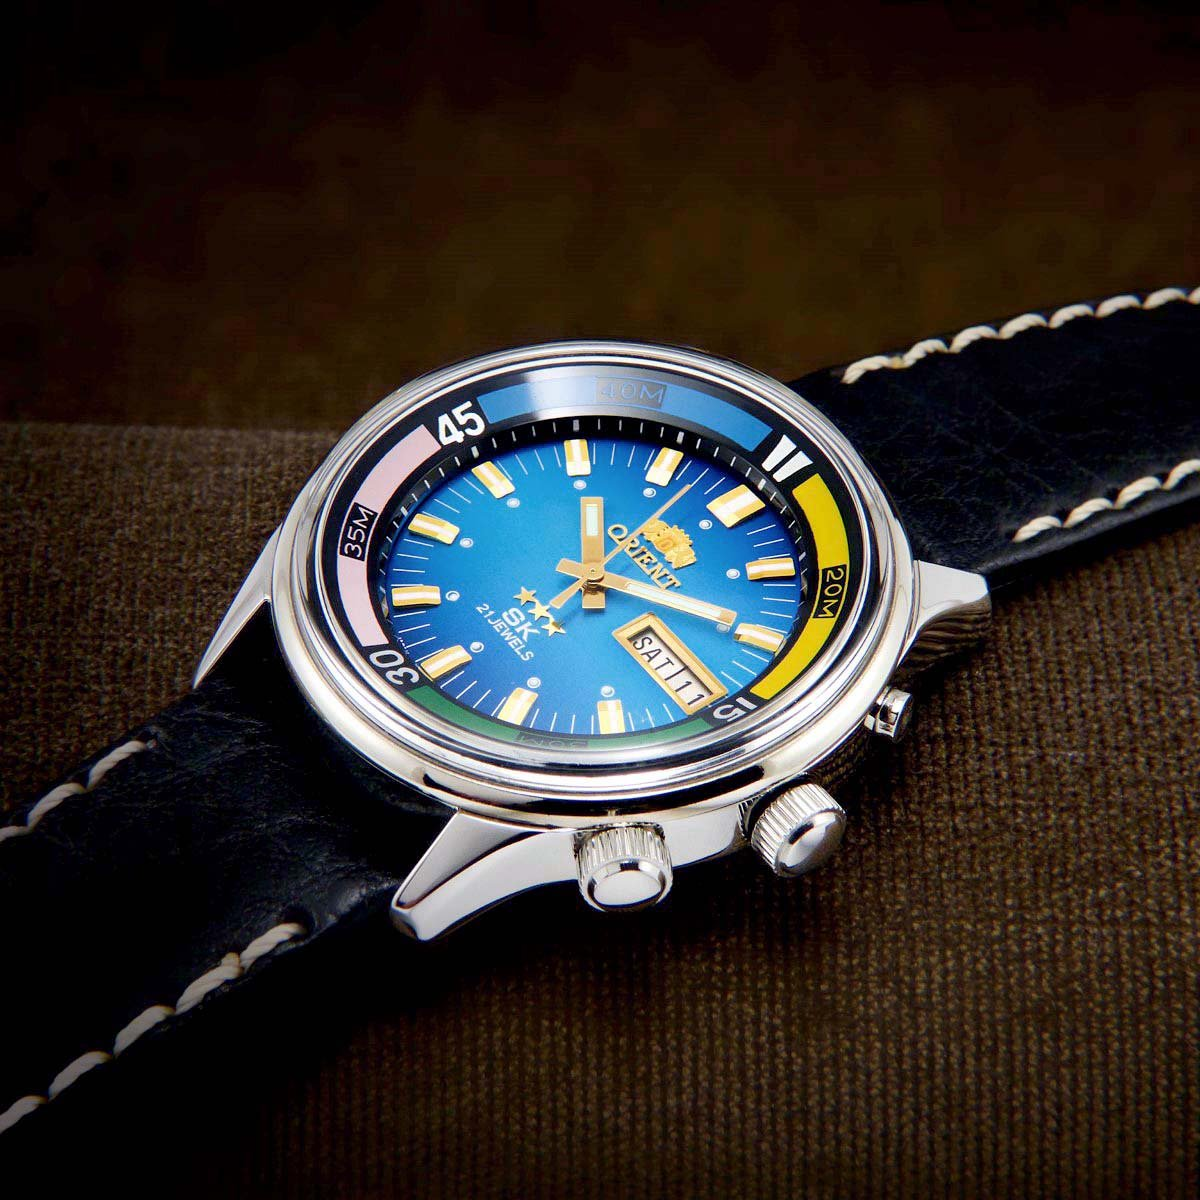 Orient Watches: the Japanese brand with a cult following for sharp designs and extraordinary value